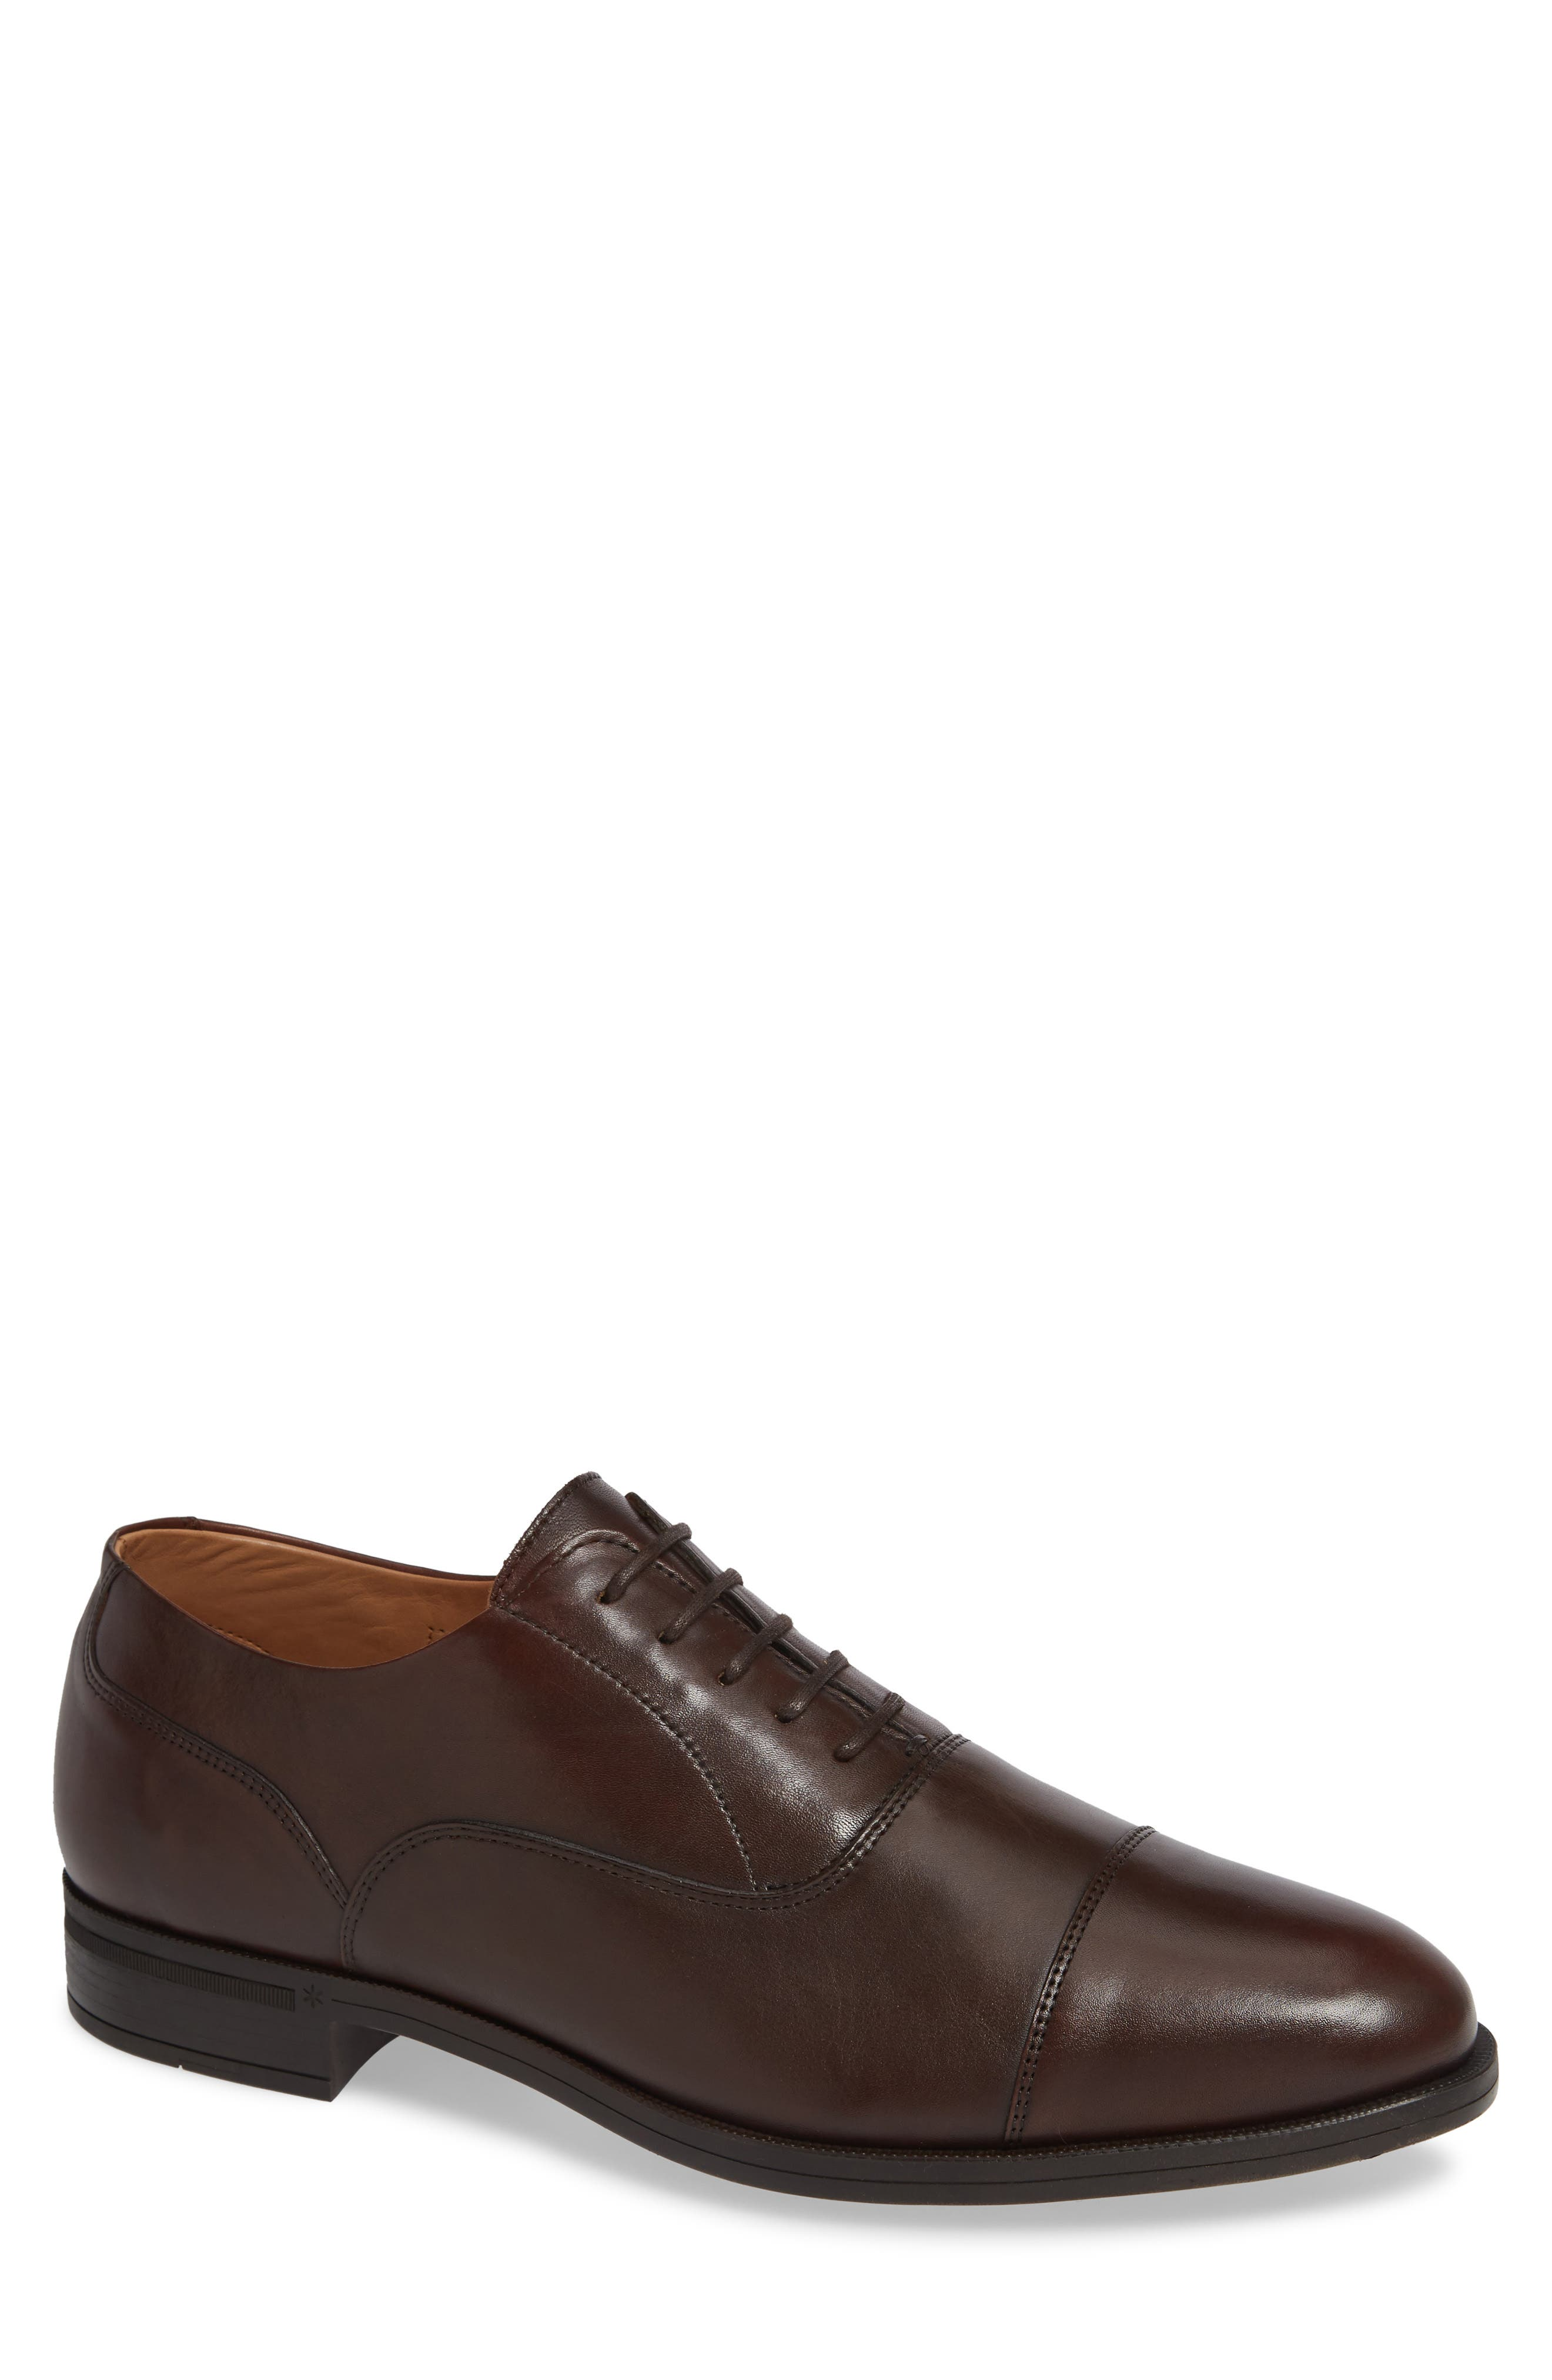 VINCE CAMUTO Iven Cap Toe Oxford, Main, color, DARK BROWN LEATHER